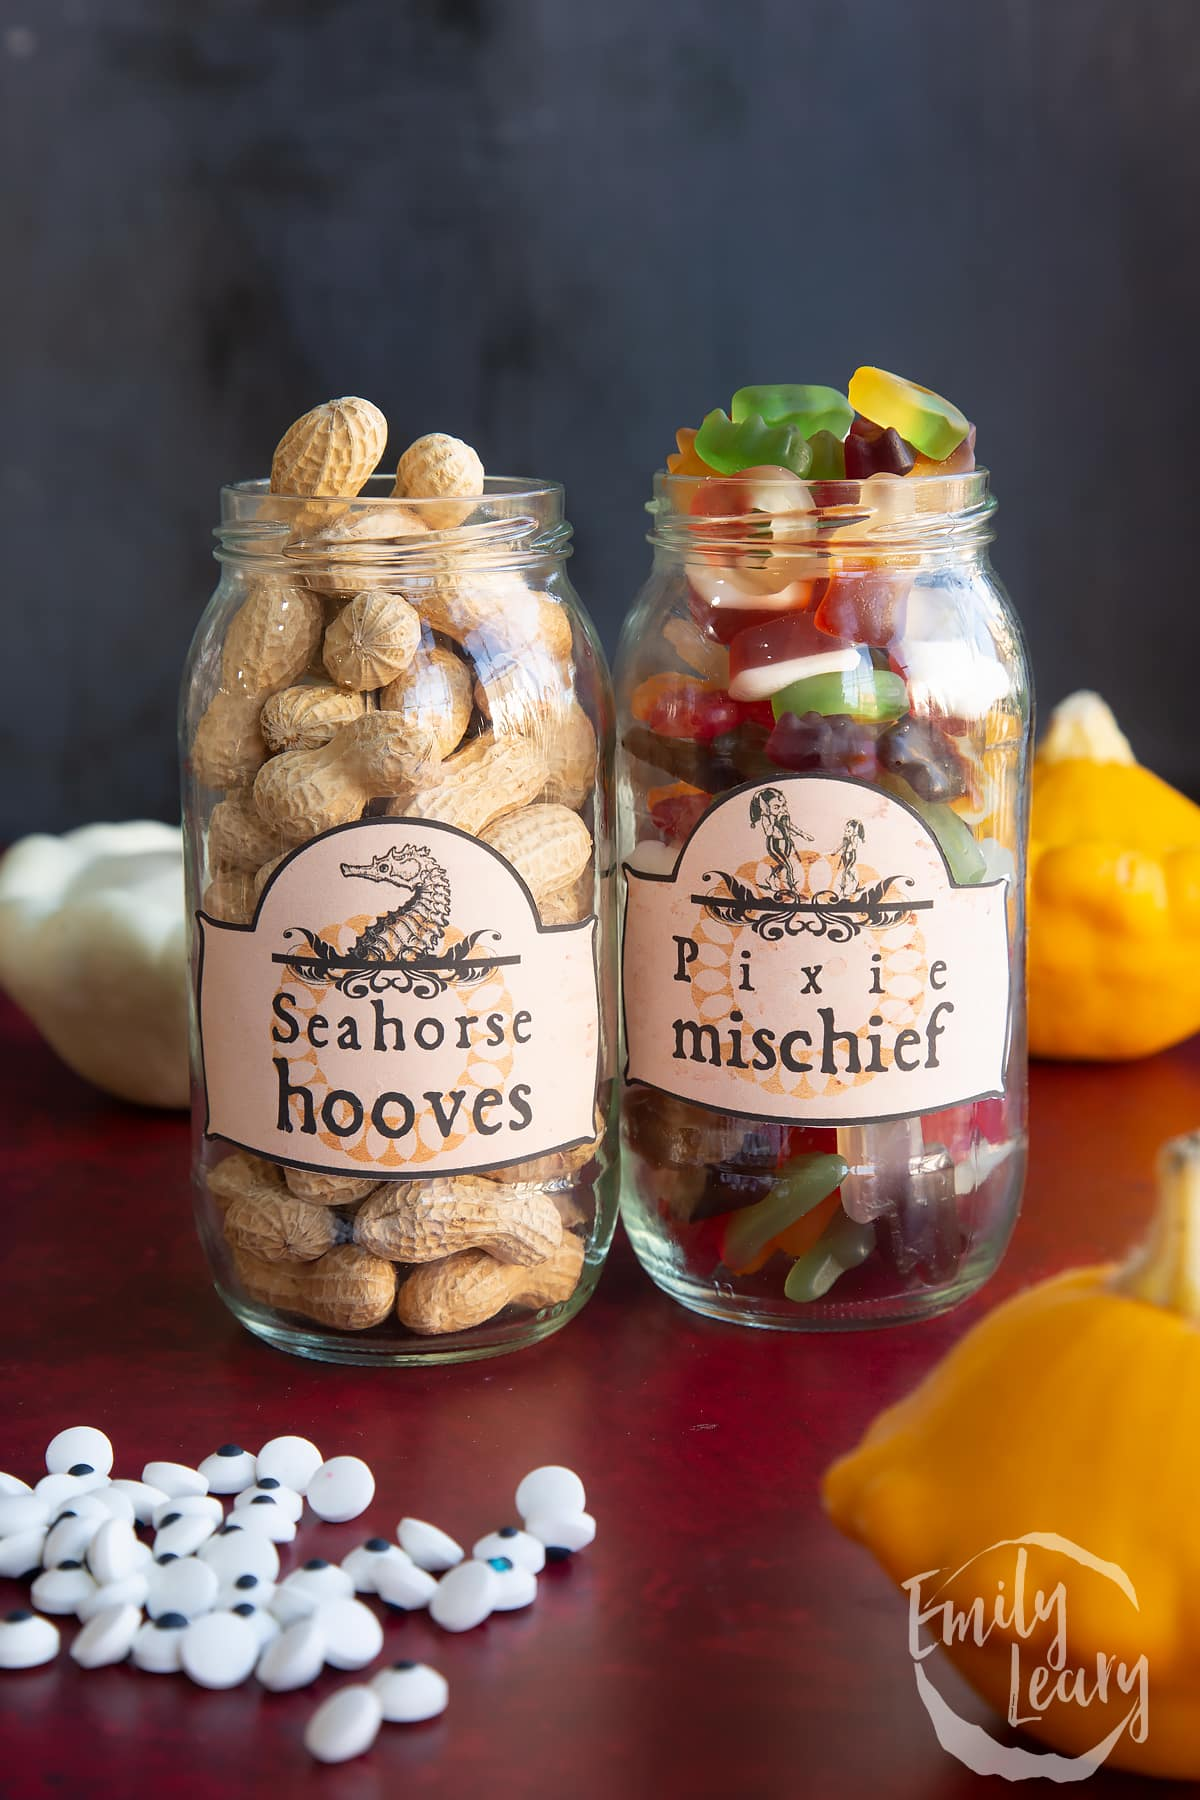 Two jars of different sizes, bearing Halloween apothecary labels. The jars contain Monkey Nuts (Seahorse hooves) and mini gummy sweets (Pixie mischief)